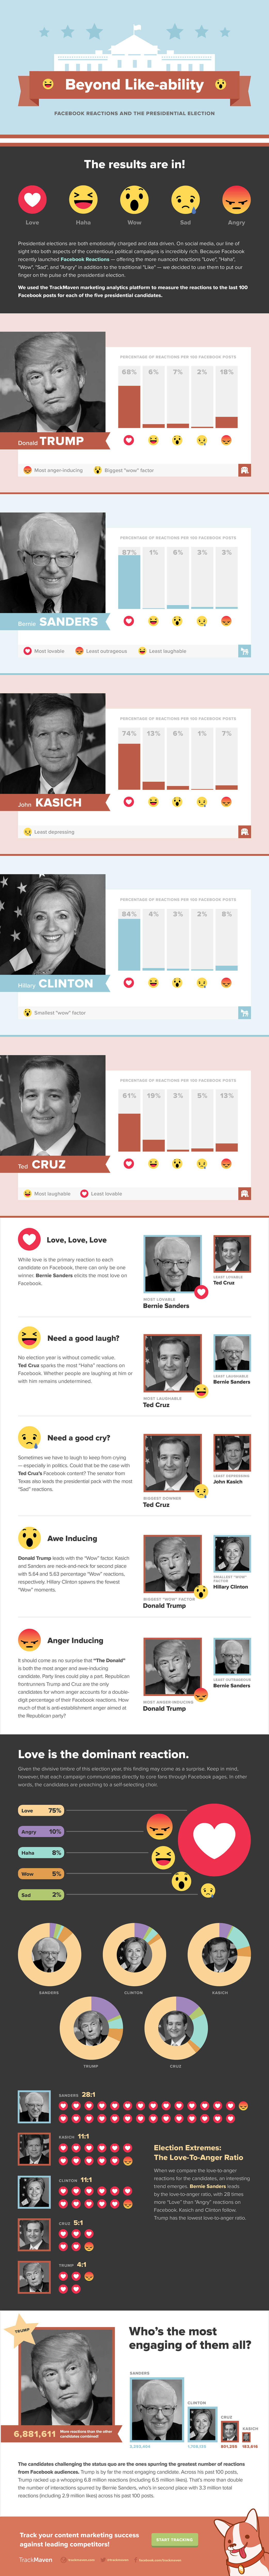 How Facebook Are Users 'Reacting' to the 2016 Presidential Candidates [Infographic] | Social Media Today